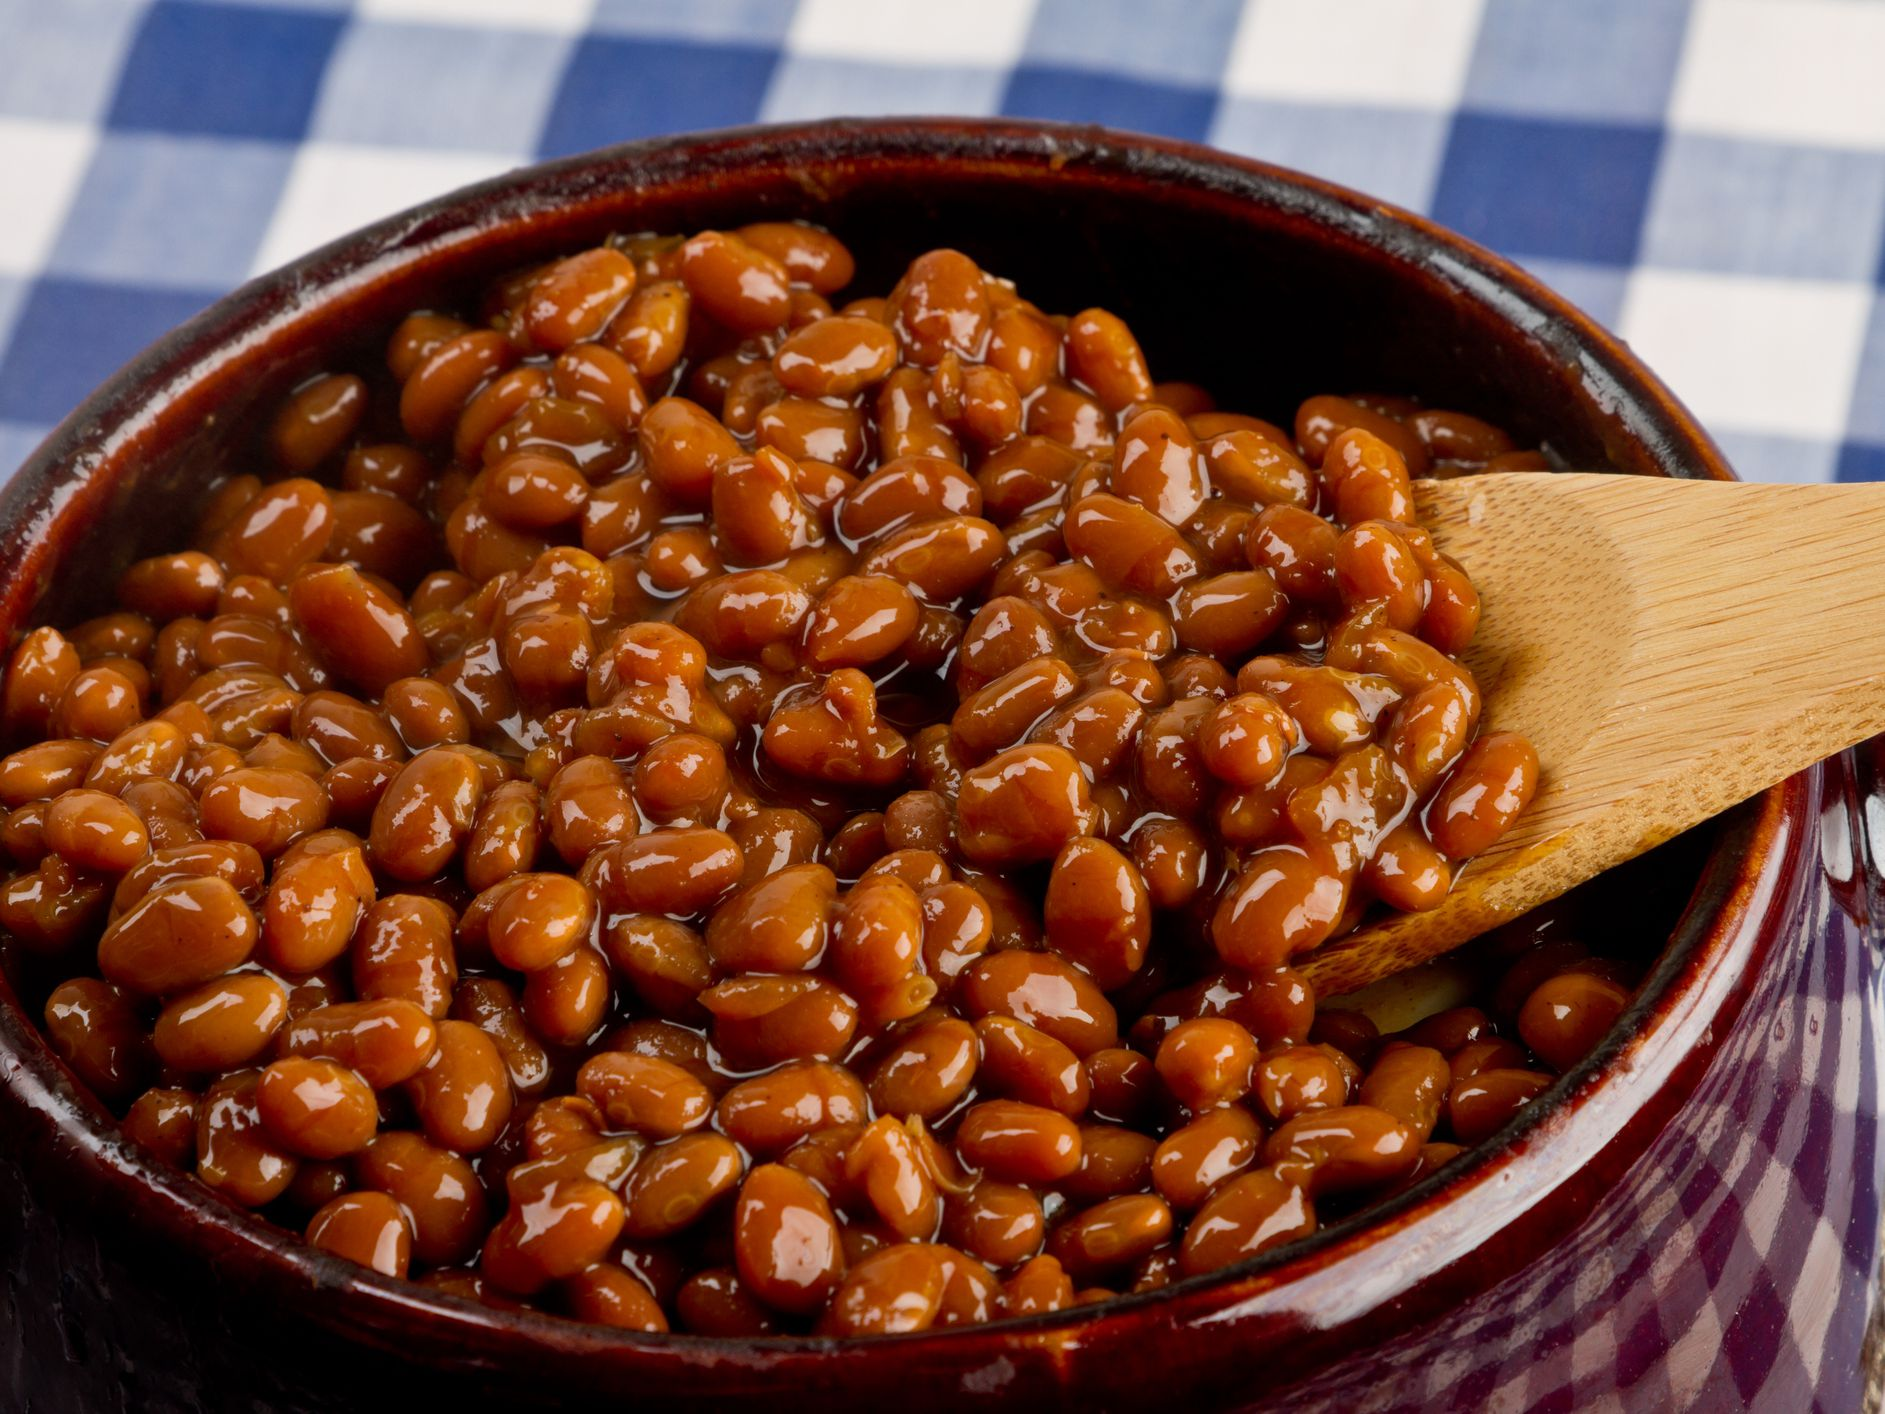 Molasses Baked Bean Recipe With Salt Pork Recipe